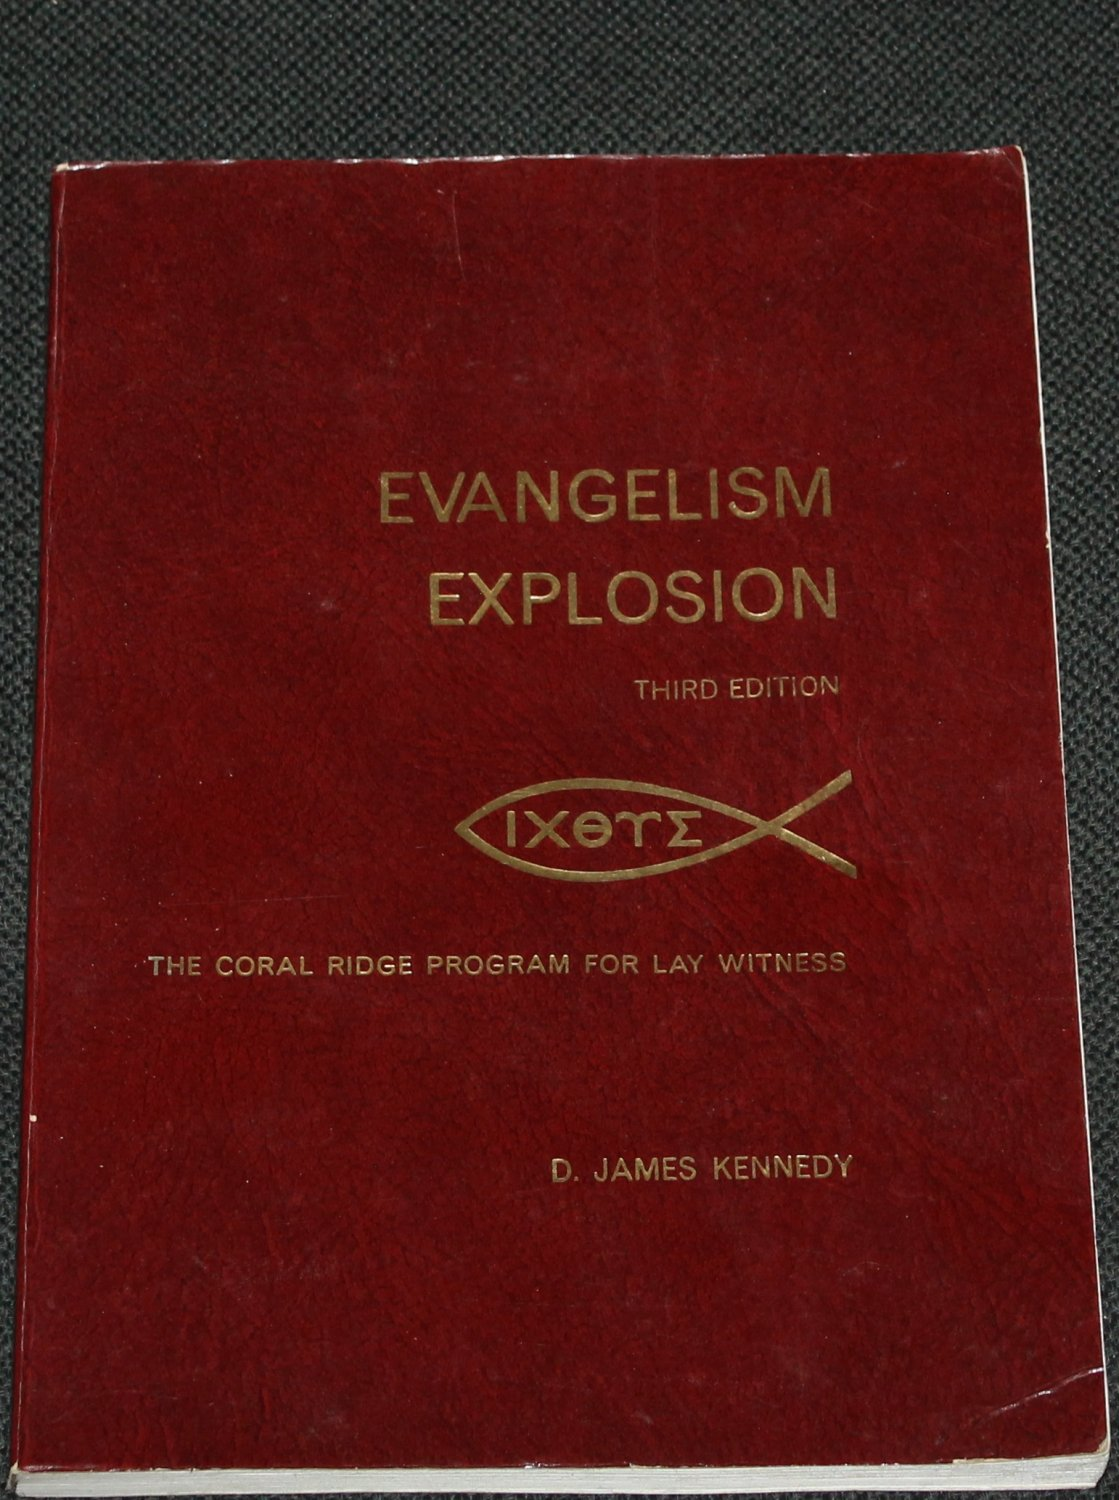 Evangelism Explosion The Coral Ridge Program For Lay Witness by D. James Kennedy